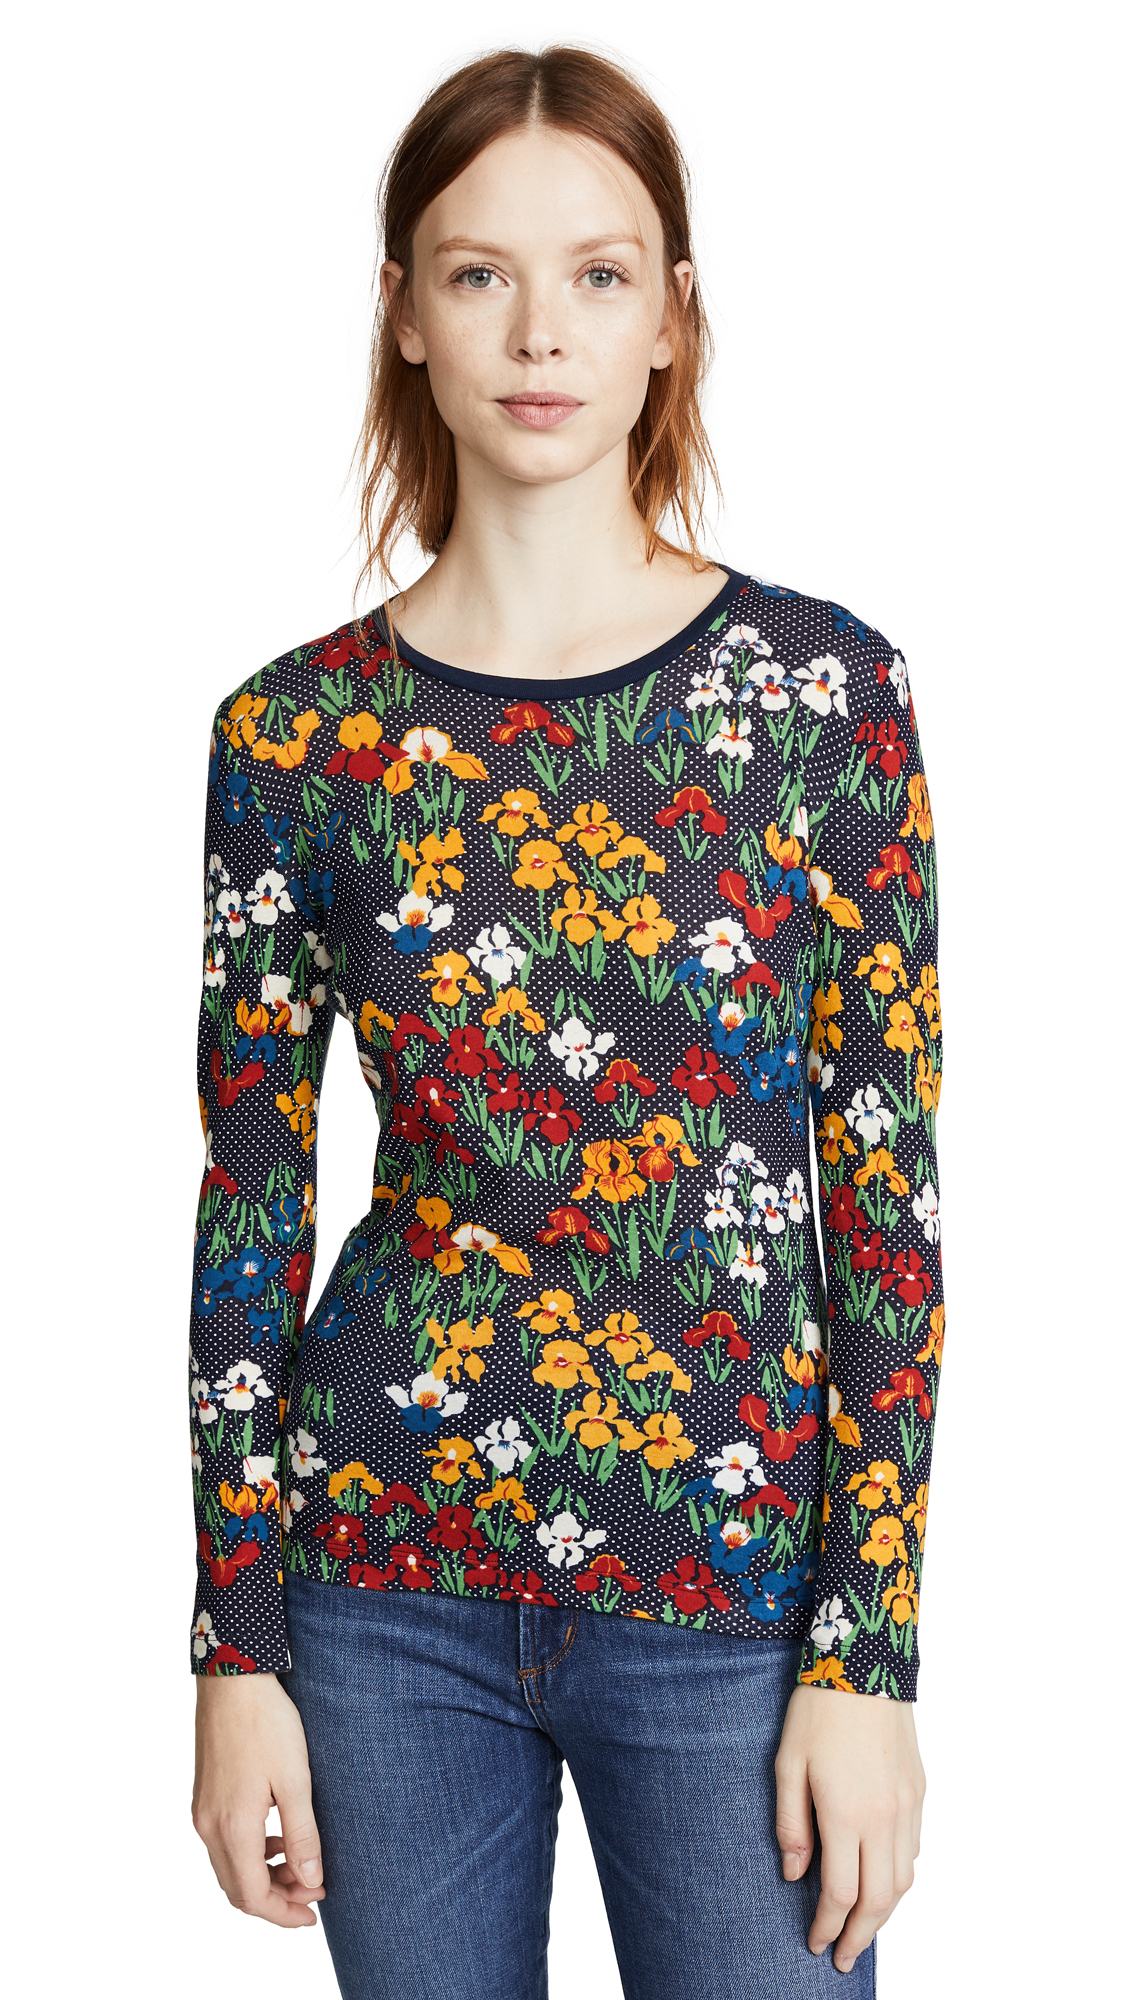 Tory Burch Katrina T-Shirt In Tory Navy/Iris Garden